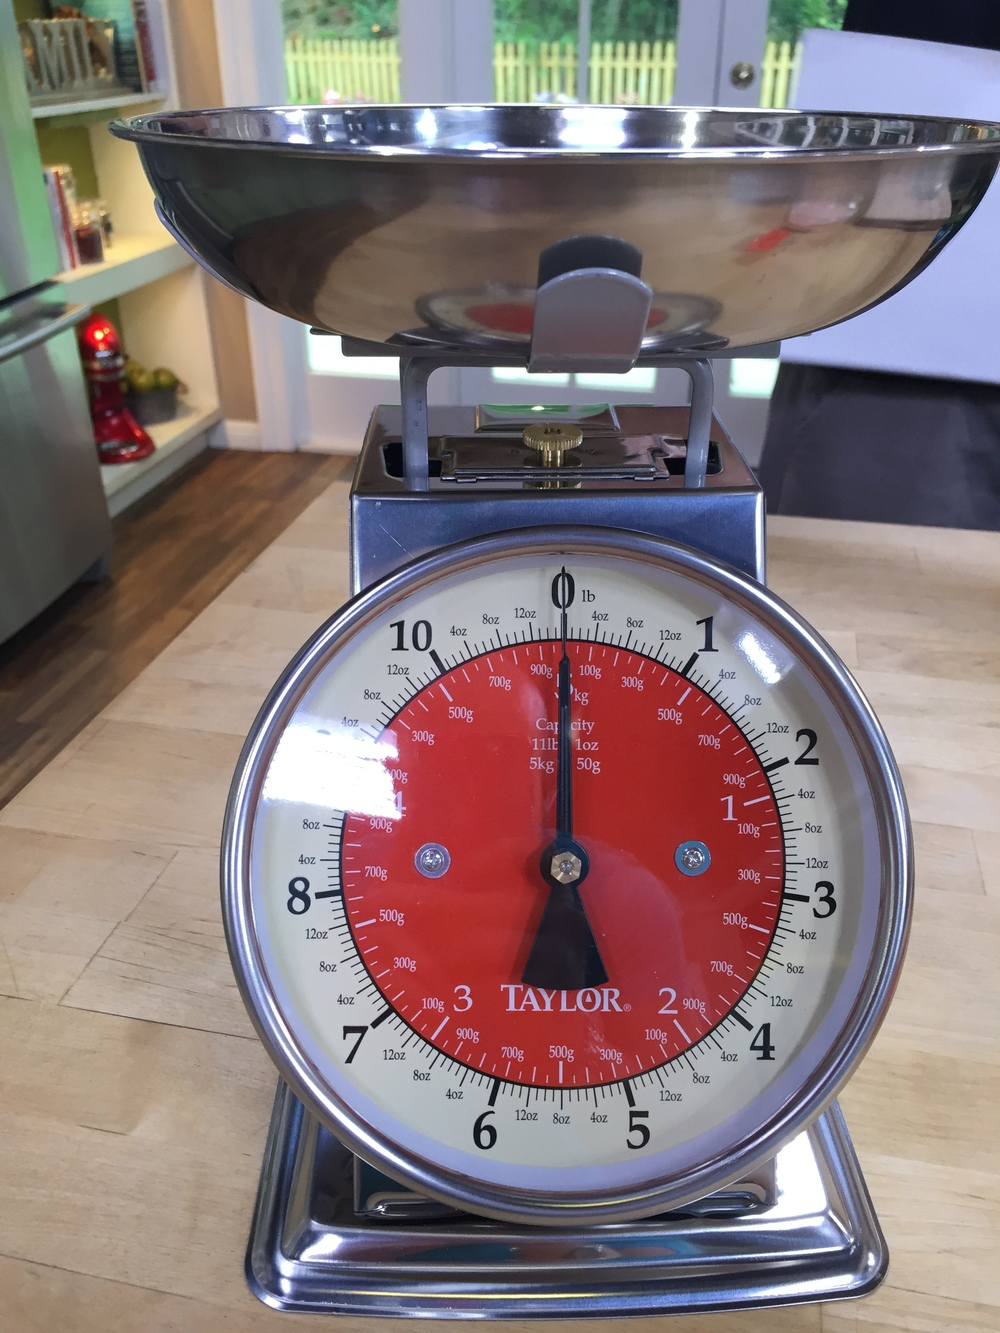 I prefer a digital scale, but if this is what you have on hand USE IT.